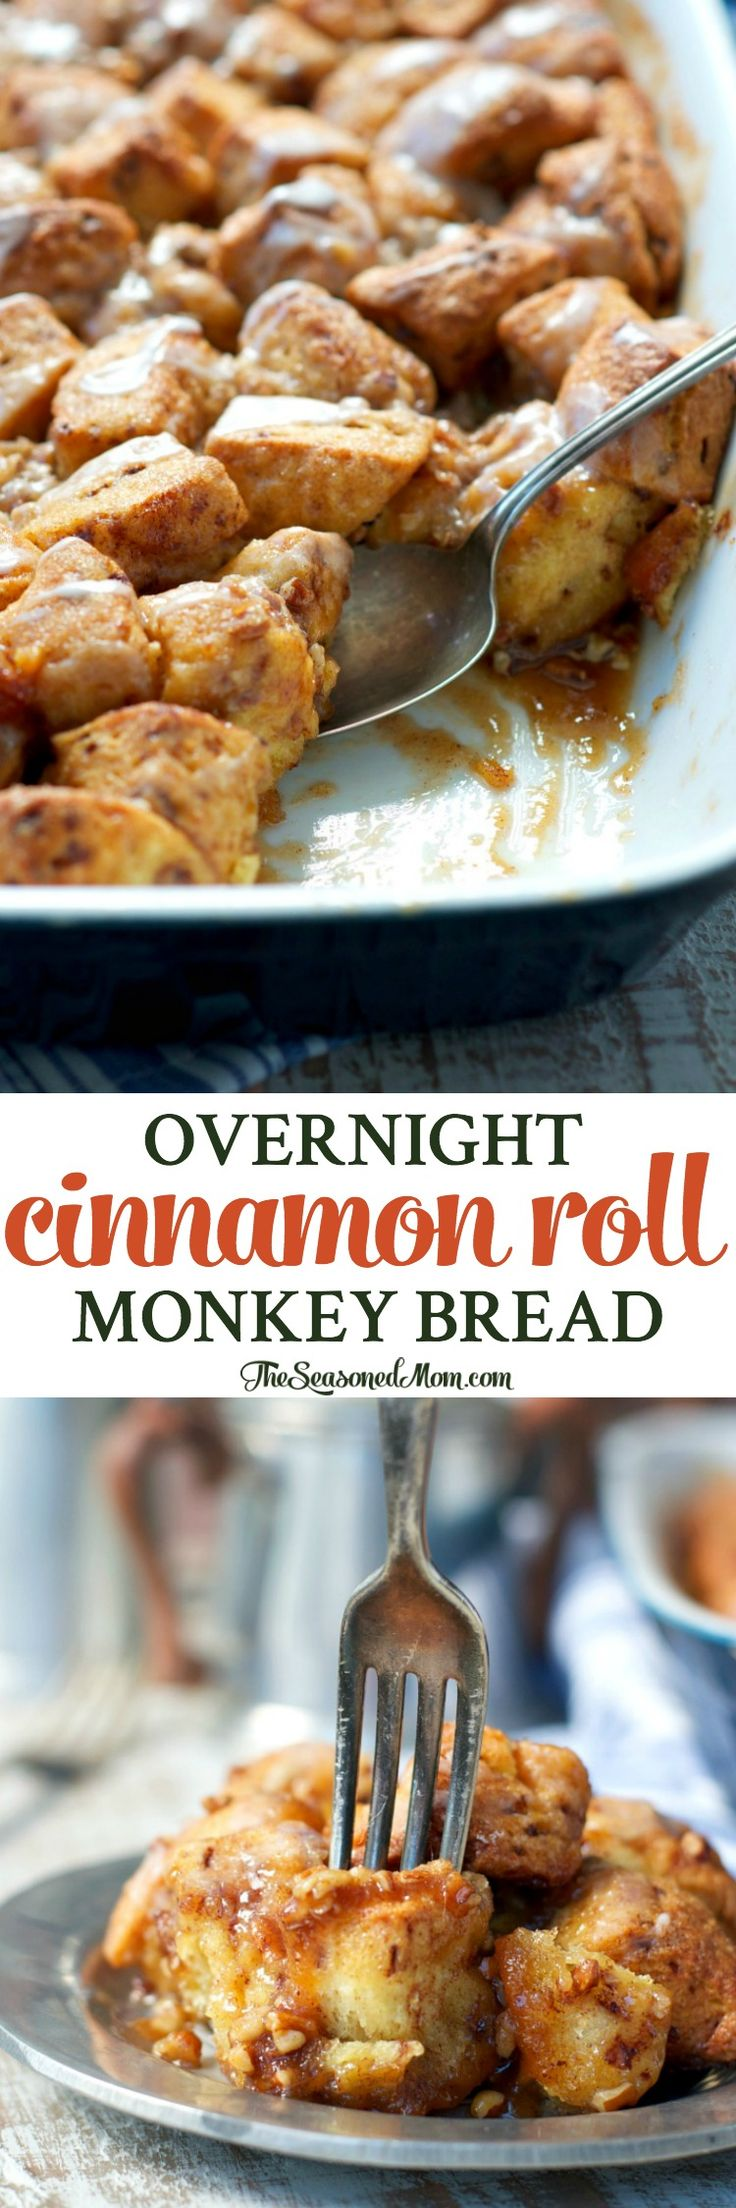 Overnight Cinnamon Roll Monkey Bread